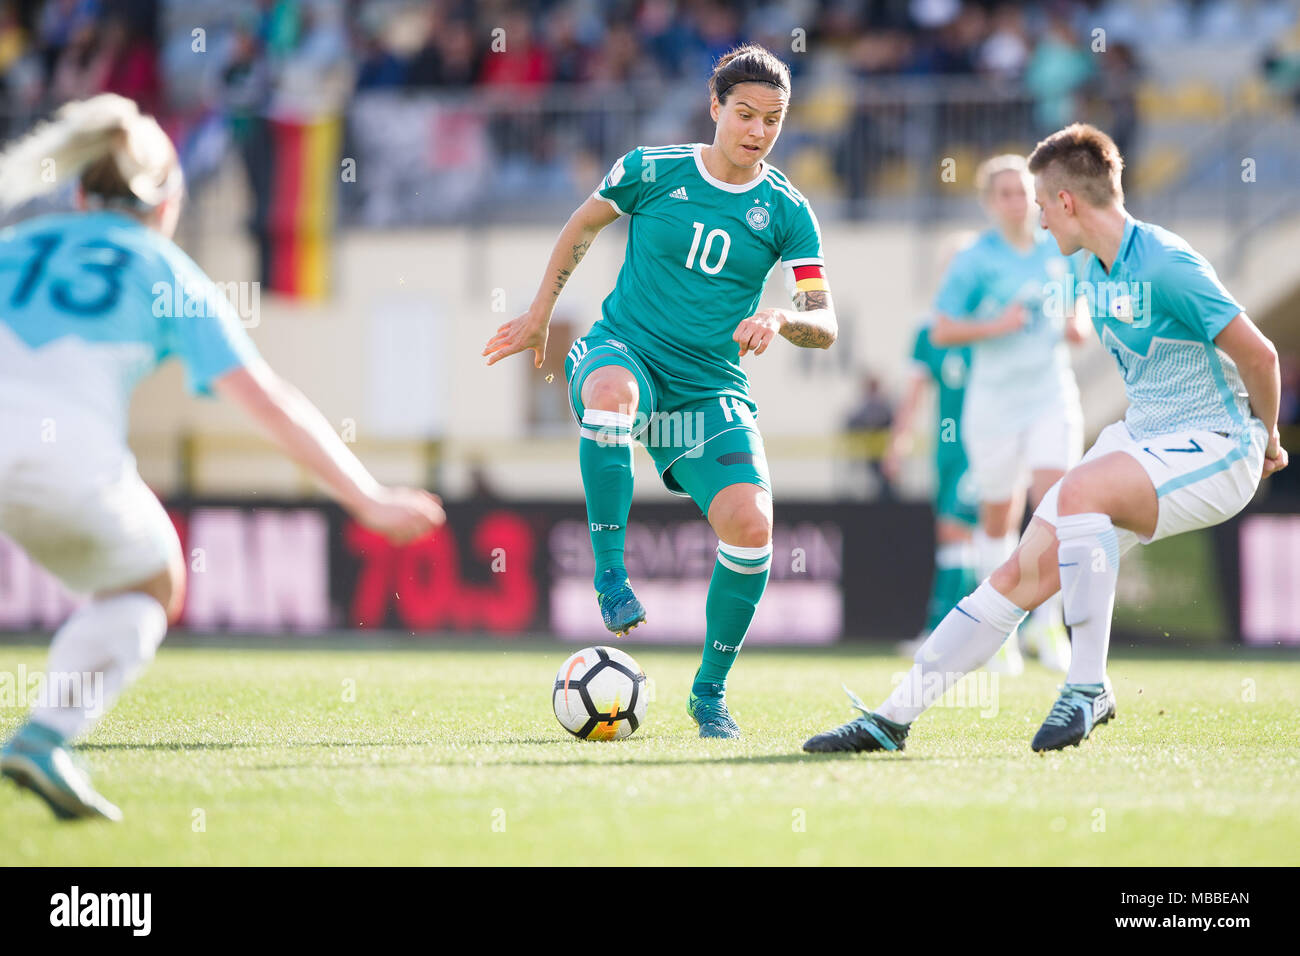 Wonderful Europe World Cup 2018 - 10-april-2018-slovenia-domzale-soccer-womens-world-cup-qualification-europe-group-stages-slovenia-vs-germany-germanys-dzsenifer-marozsan-c-and-slovenias-kristina-erman-r-in-action-slovenias-lara-ivanusa-on-the-left-photo-sasa-pahic-szabodpa-MBBEAN  Photograph_272391 .jpg